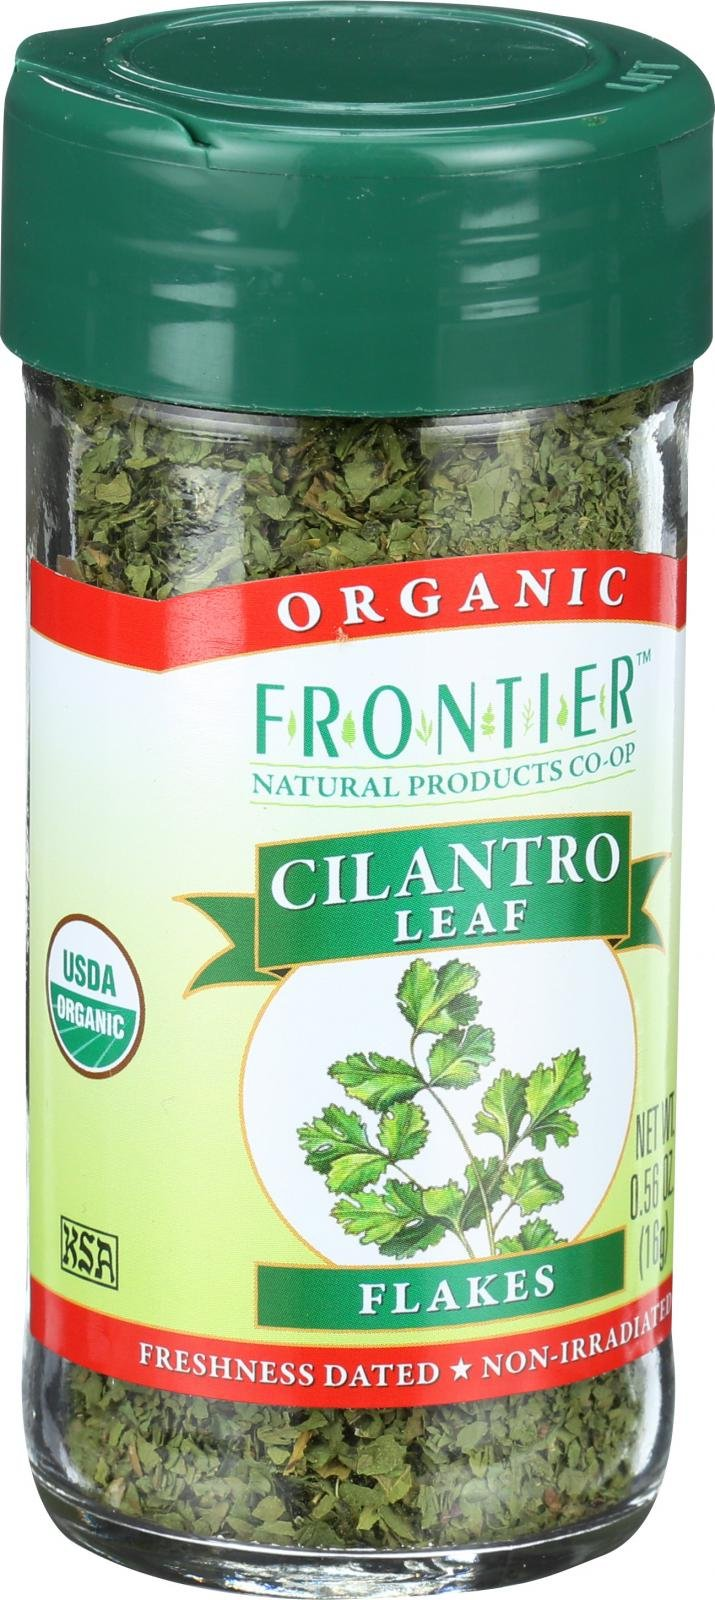 Frontier Herb Cilantro Leaf - Organic - Cut and Sifted - 0.56 oz - 95%+ Organic - Kosher by Frontier (Image #1)